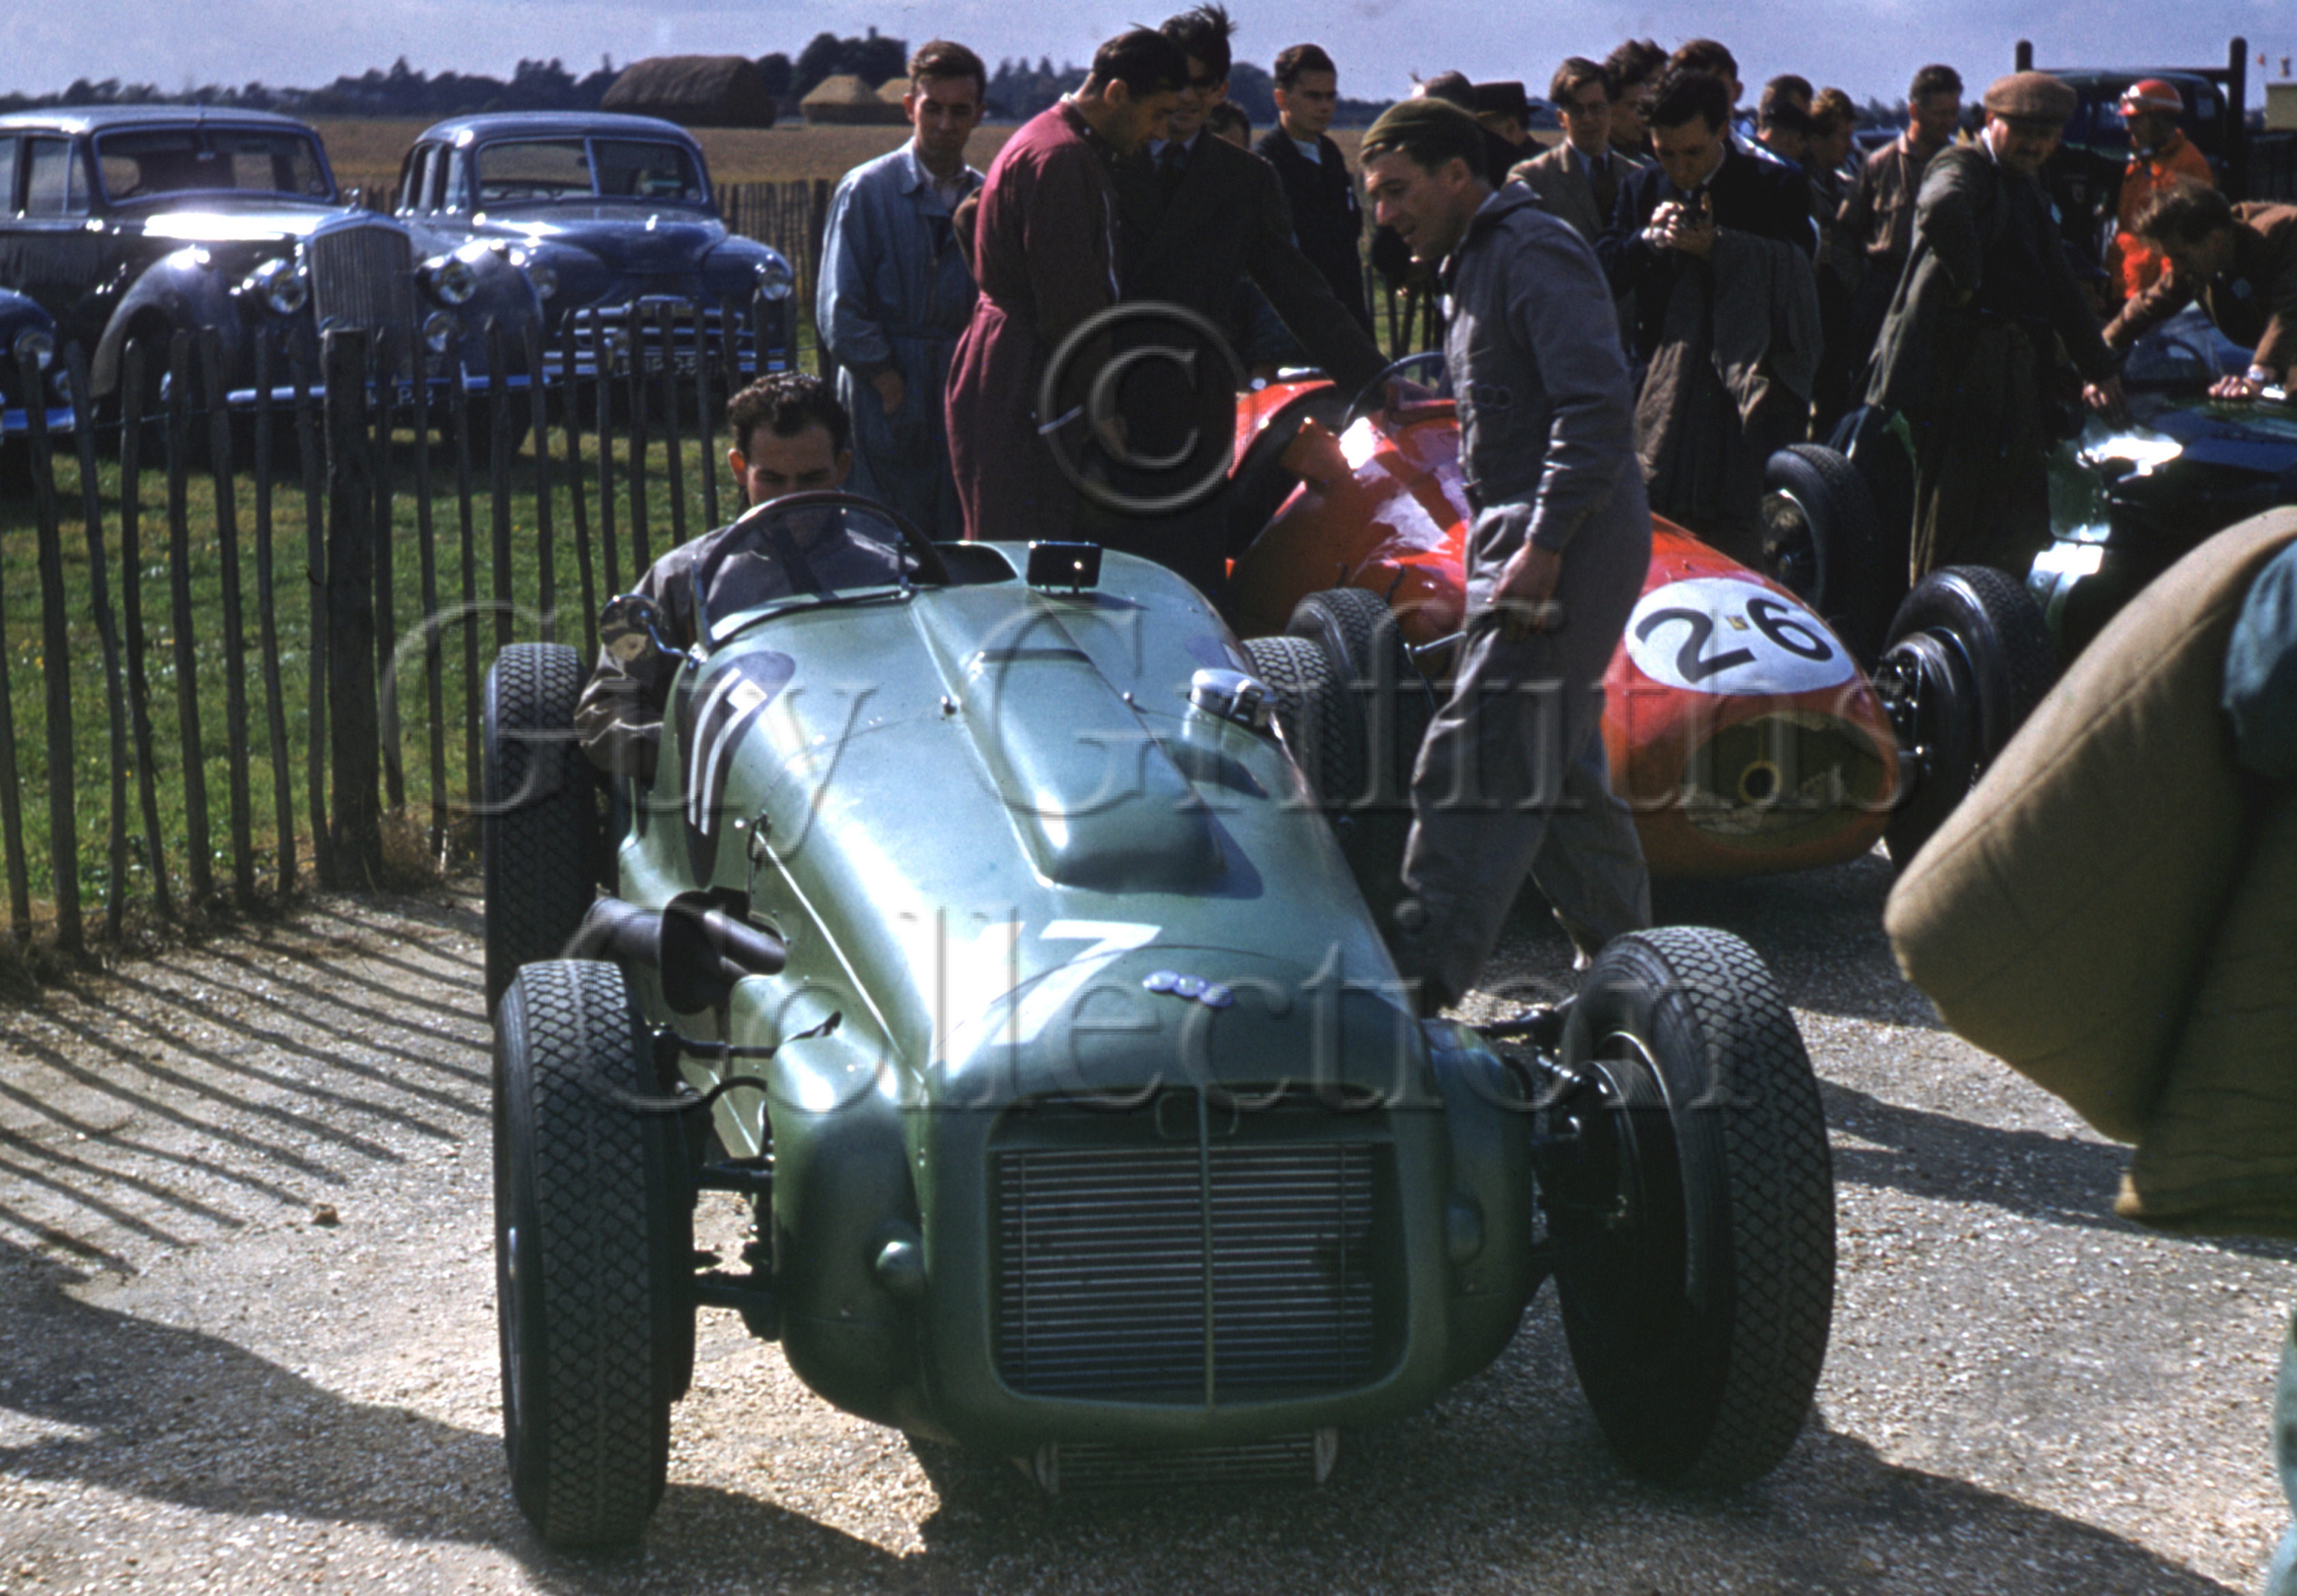 C-3-138–S-Moss—ERA–Goodwood–27-09-1952.jpg - The Guy Griffiths Collection